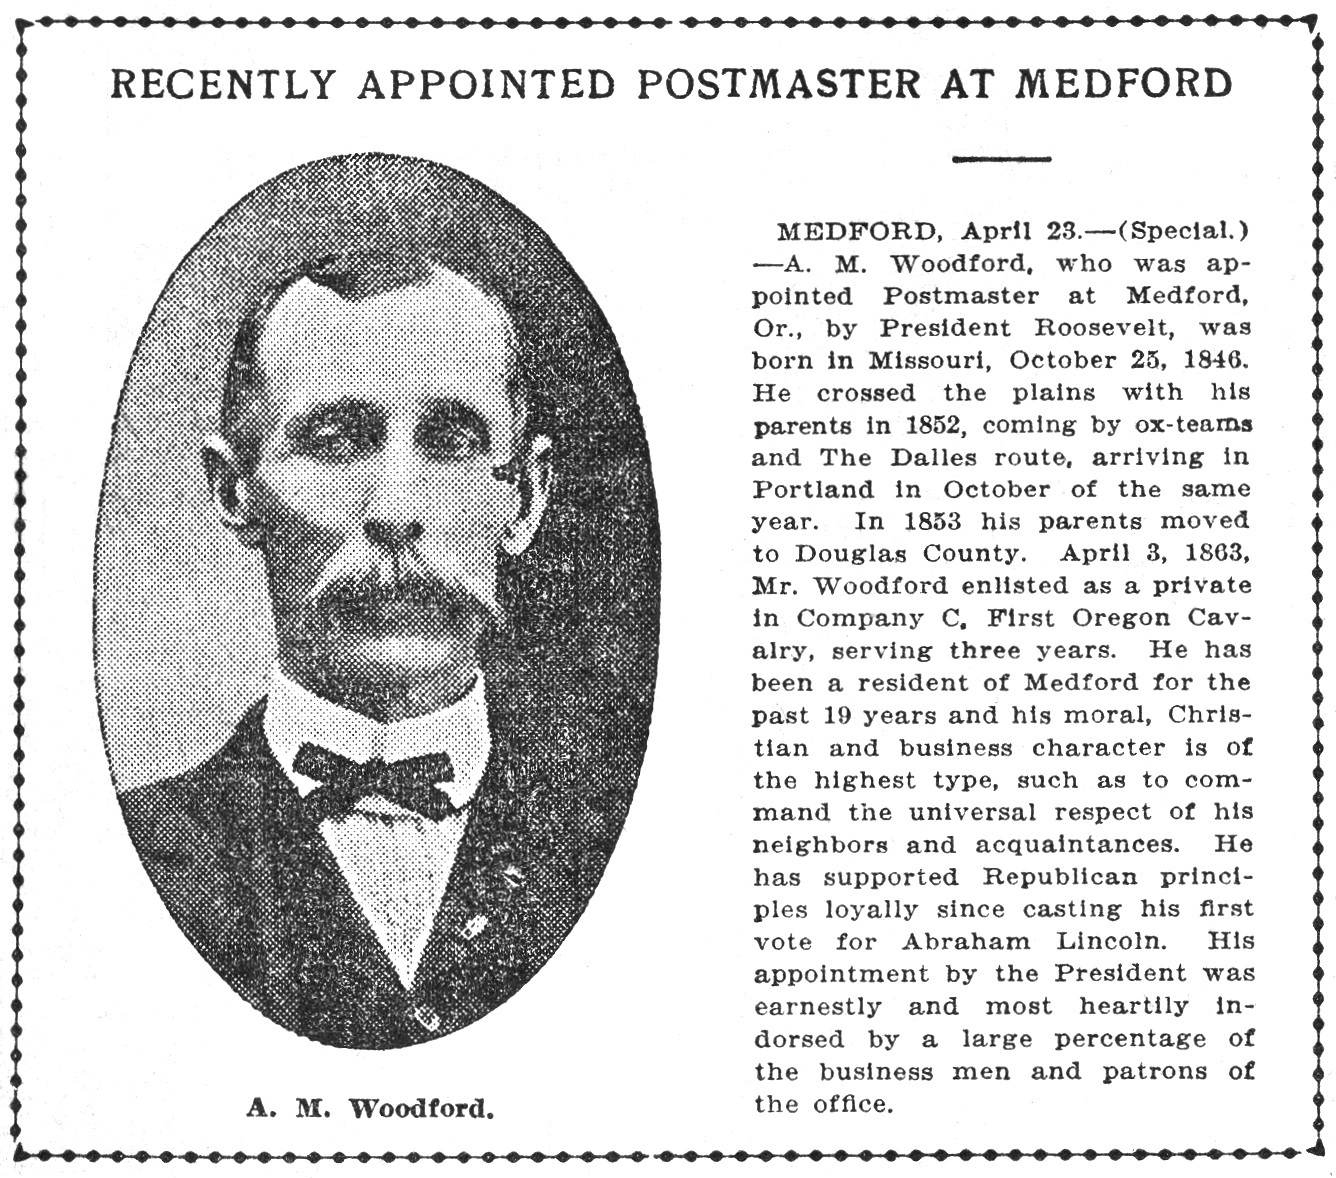 Postmaster A. M. Woodford, April 25, 1904 Oregonian